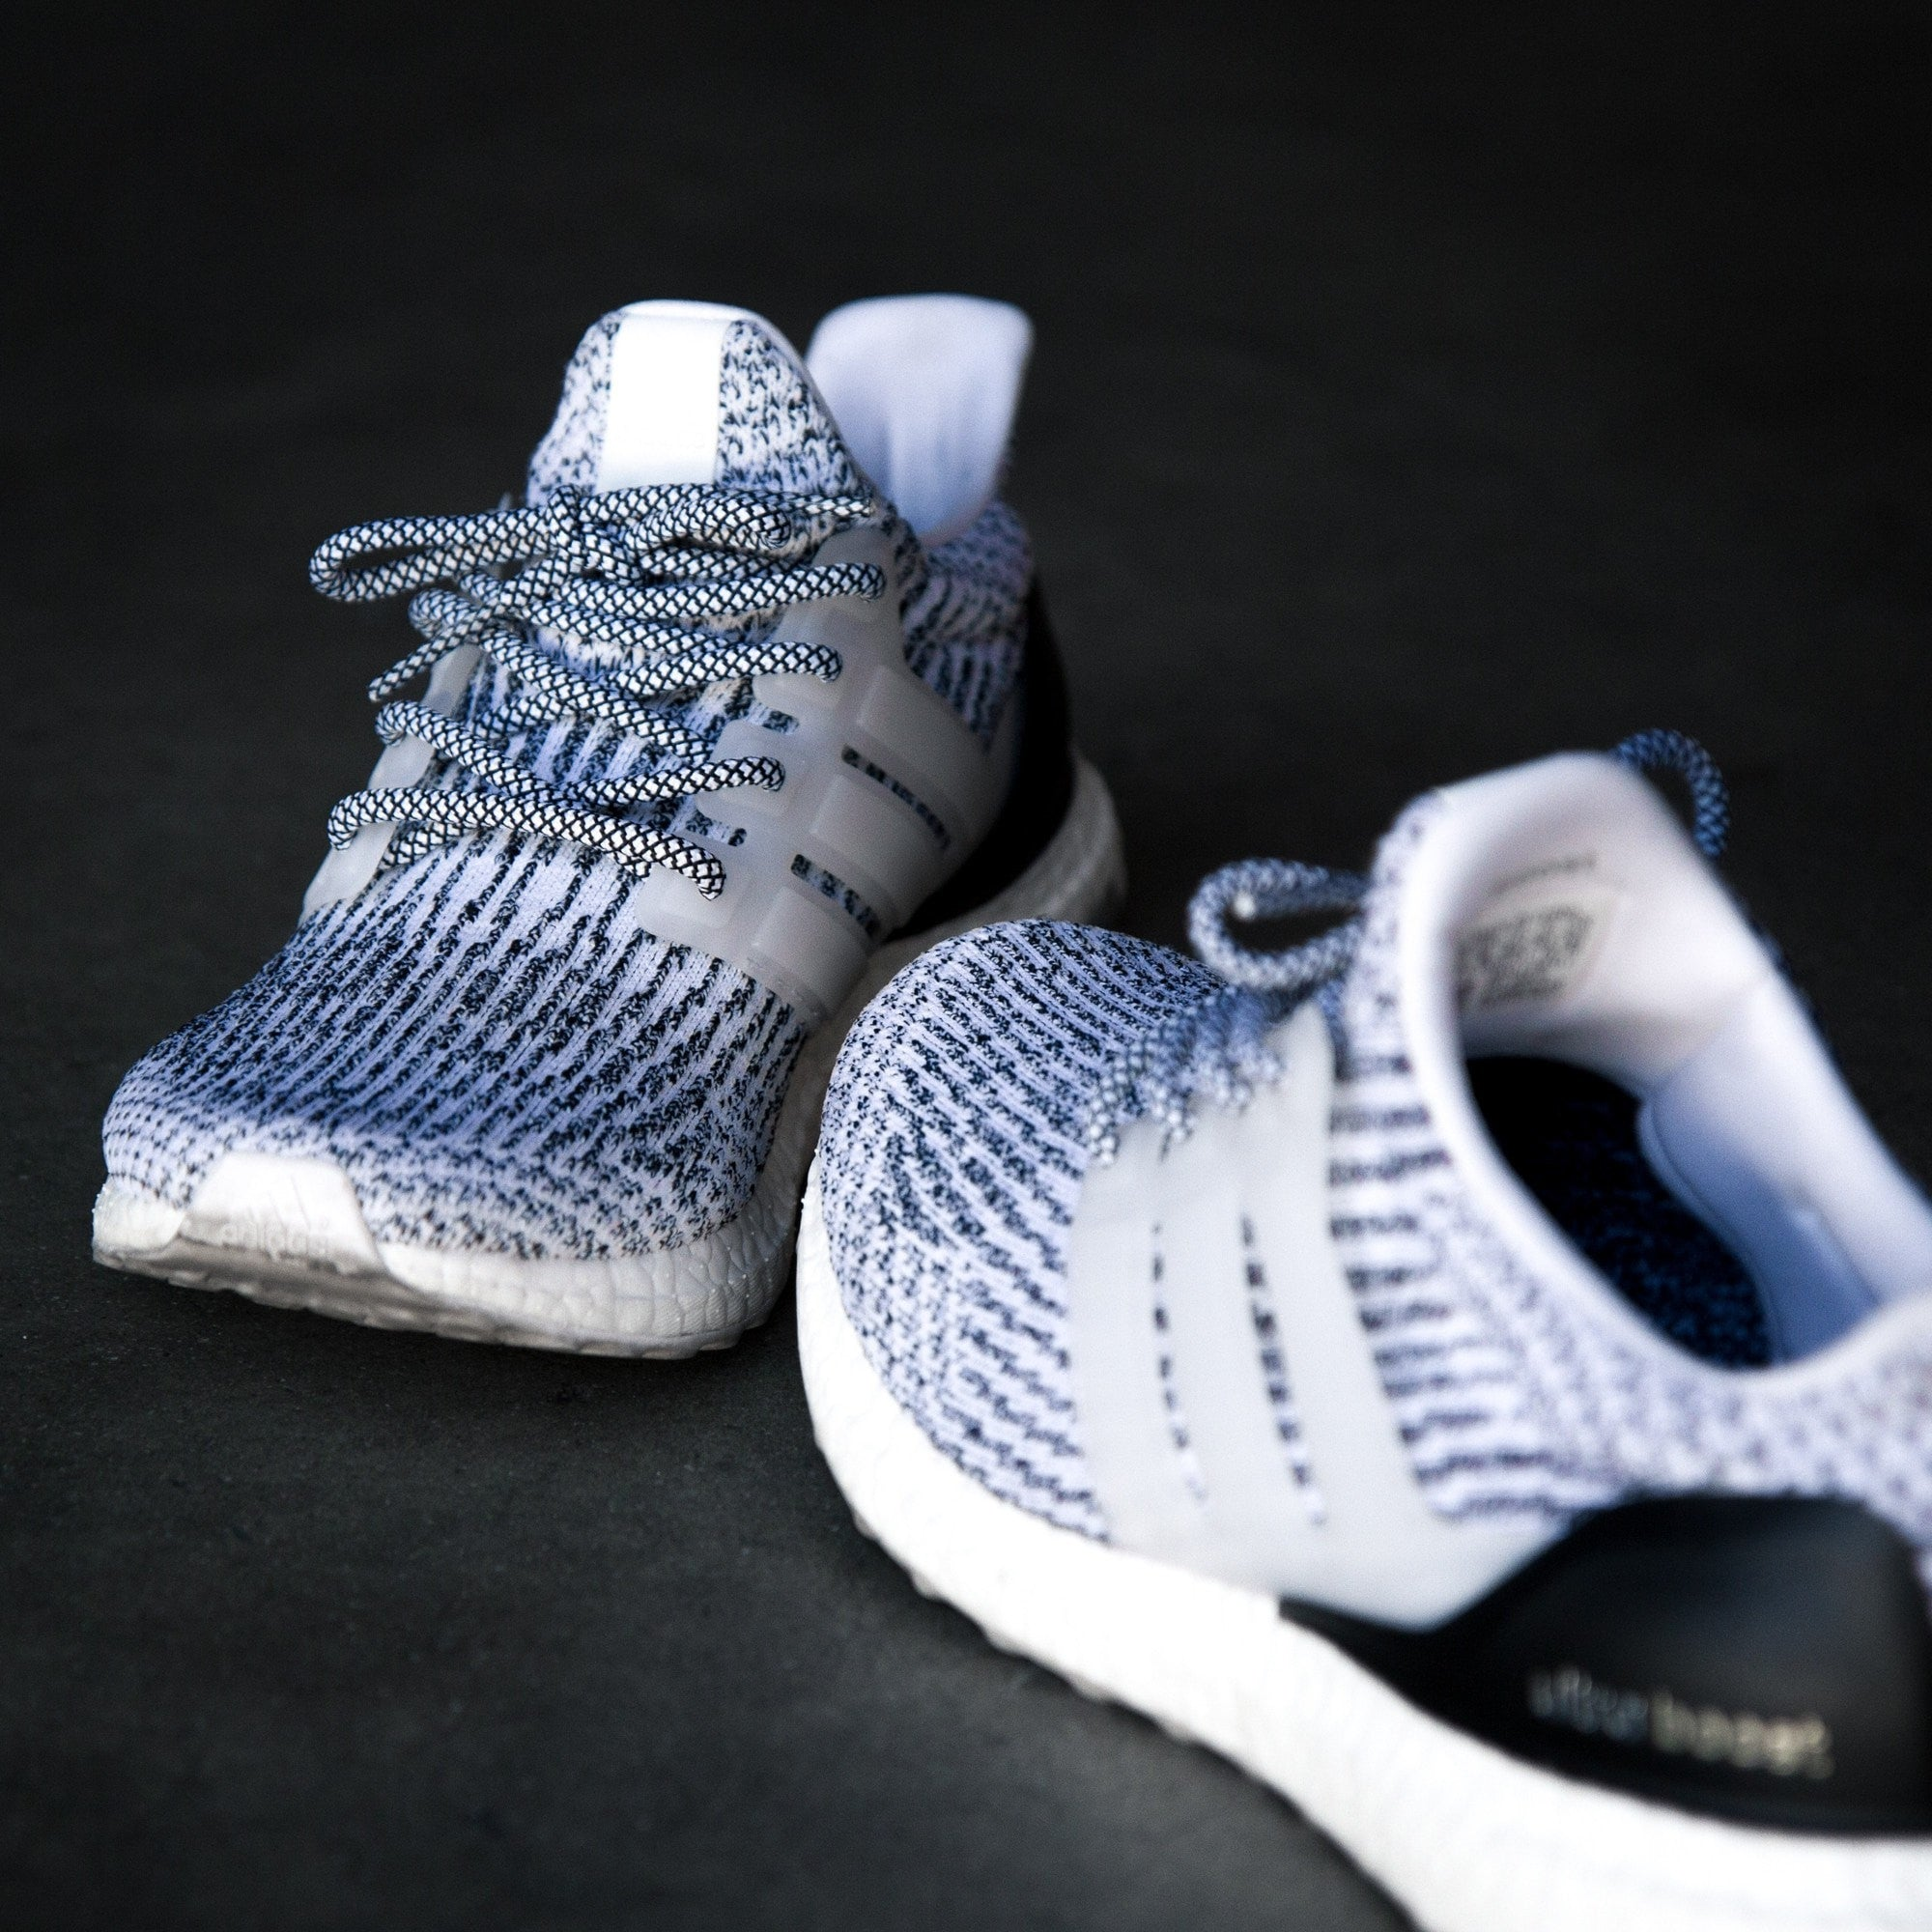 BlackWhite Rope Laces | Lace Lab | Yeezy Rope Laces | NMD Laces